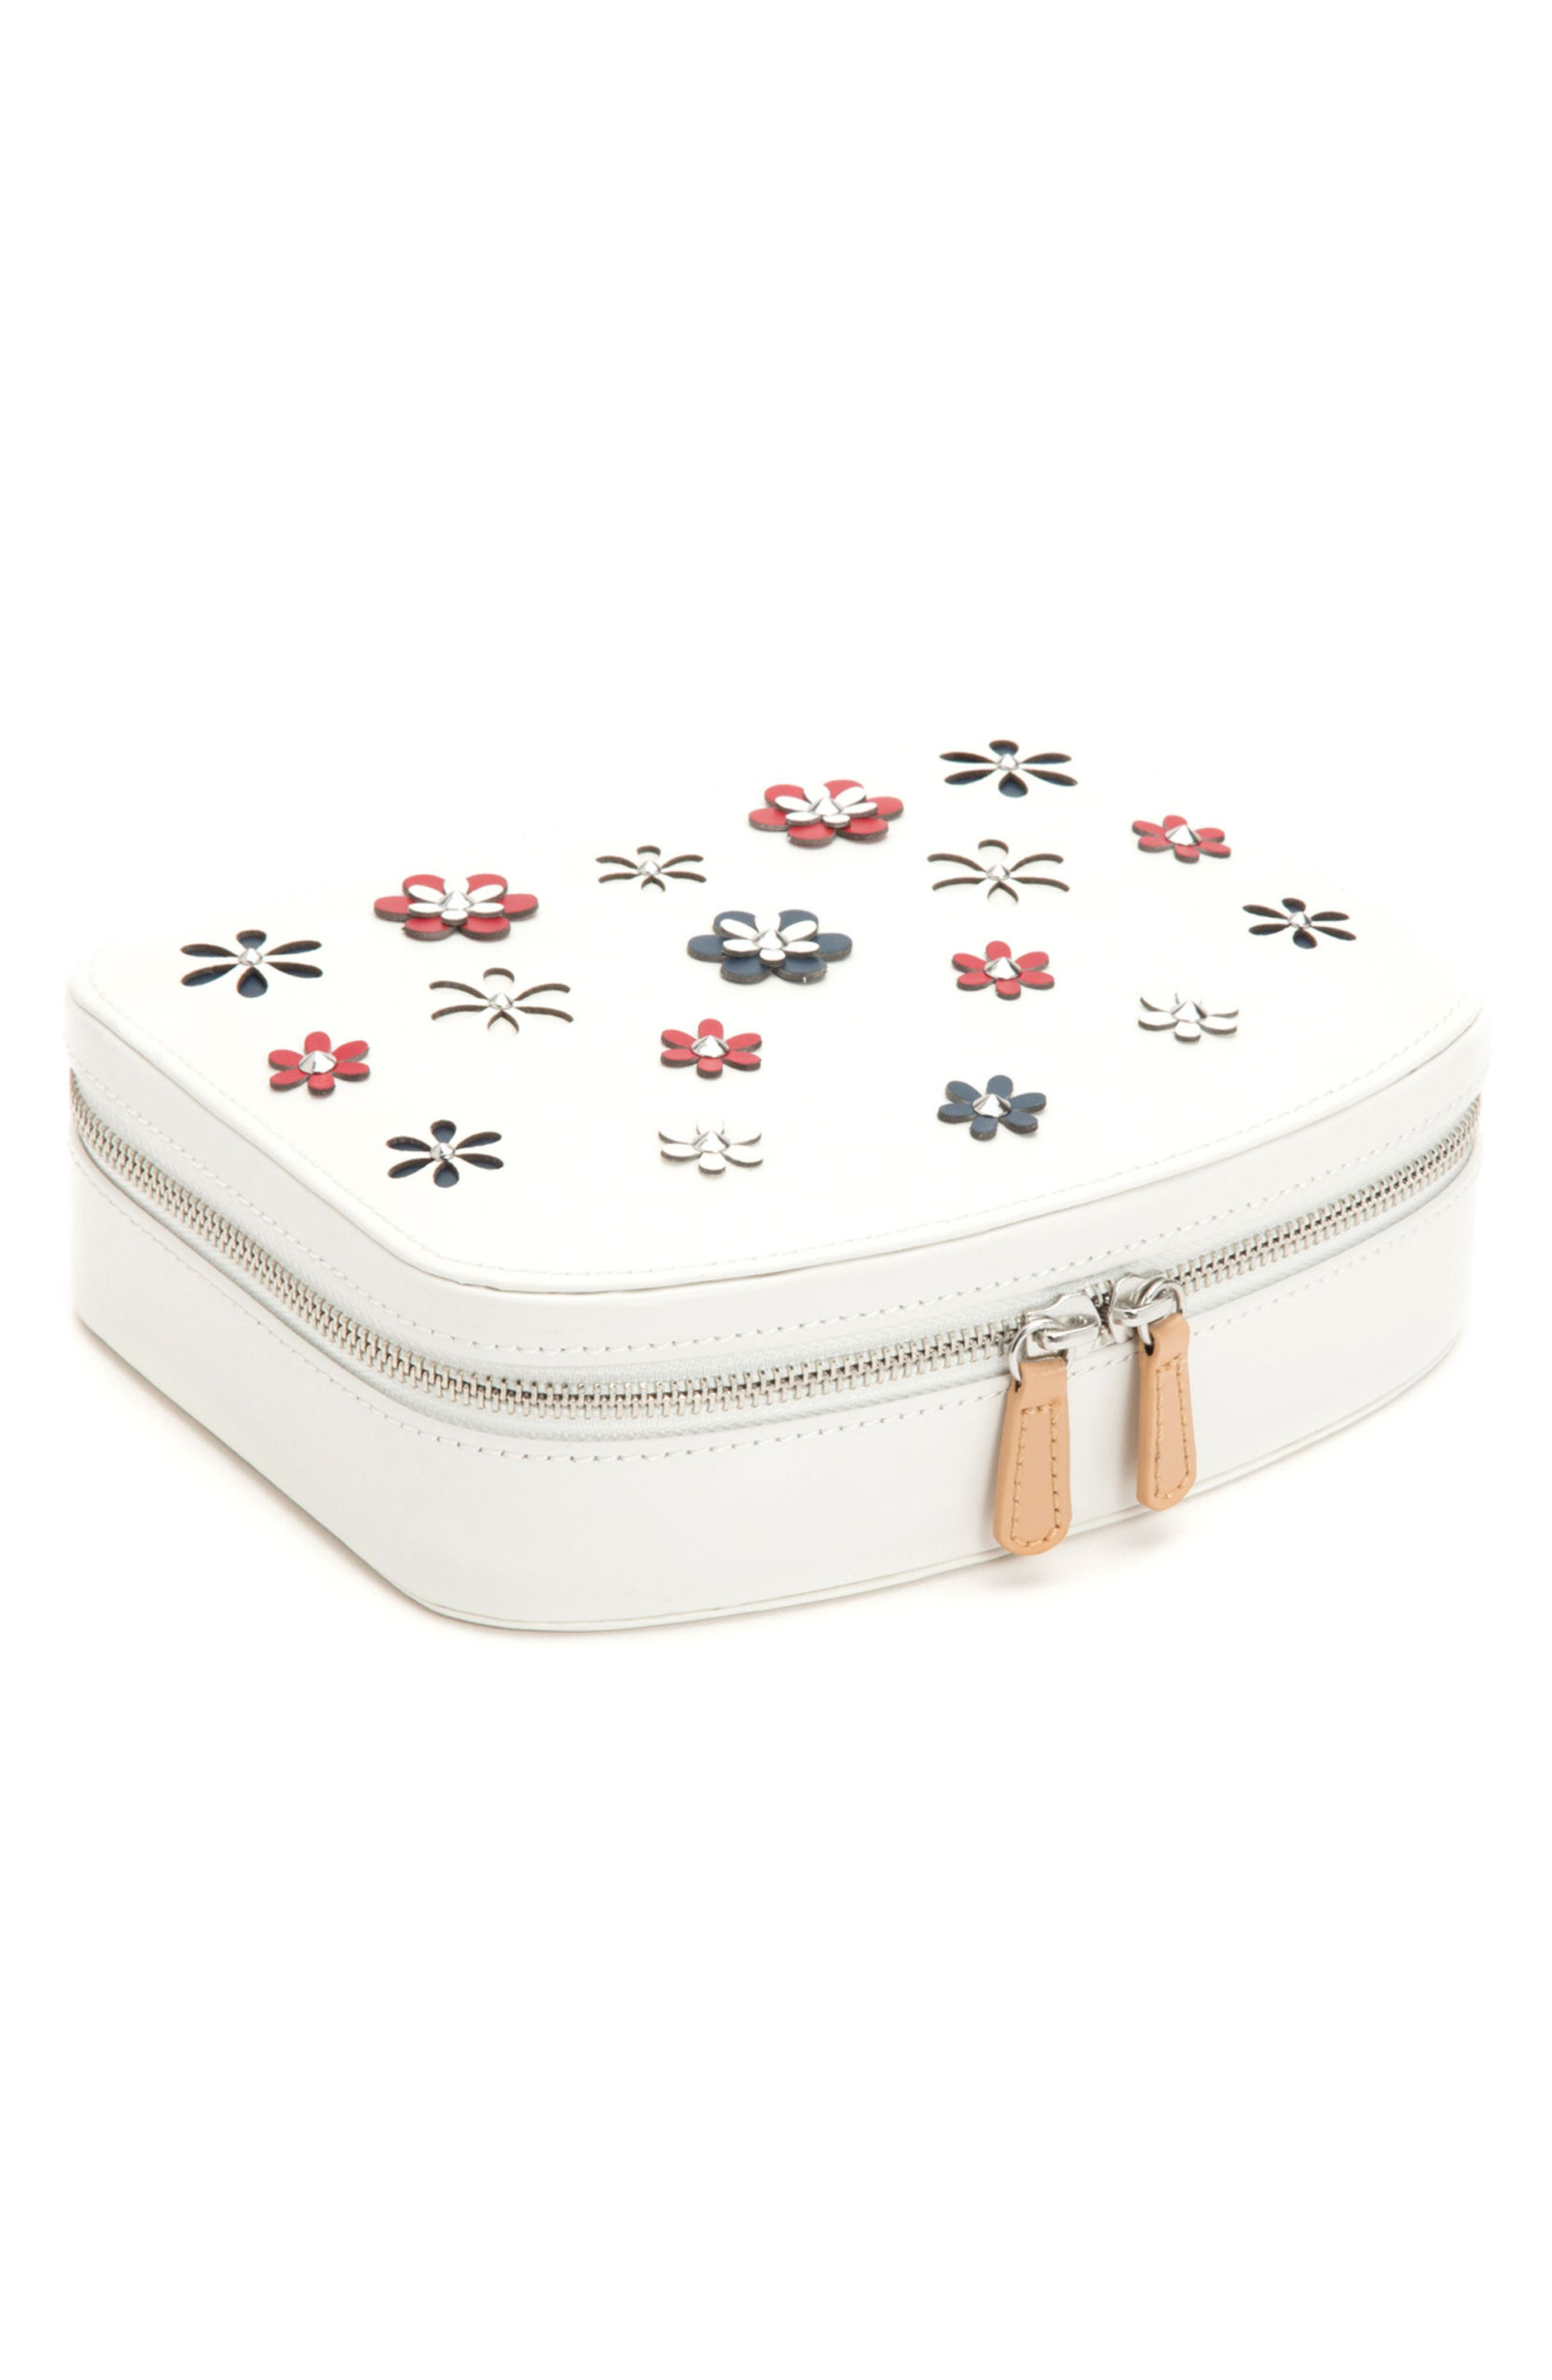 Blossom Leather Travel Jewelry Case,                             Alternate thumbnail 4, color,                             IVORY